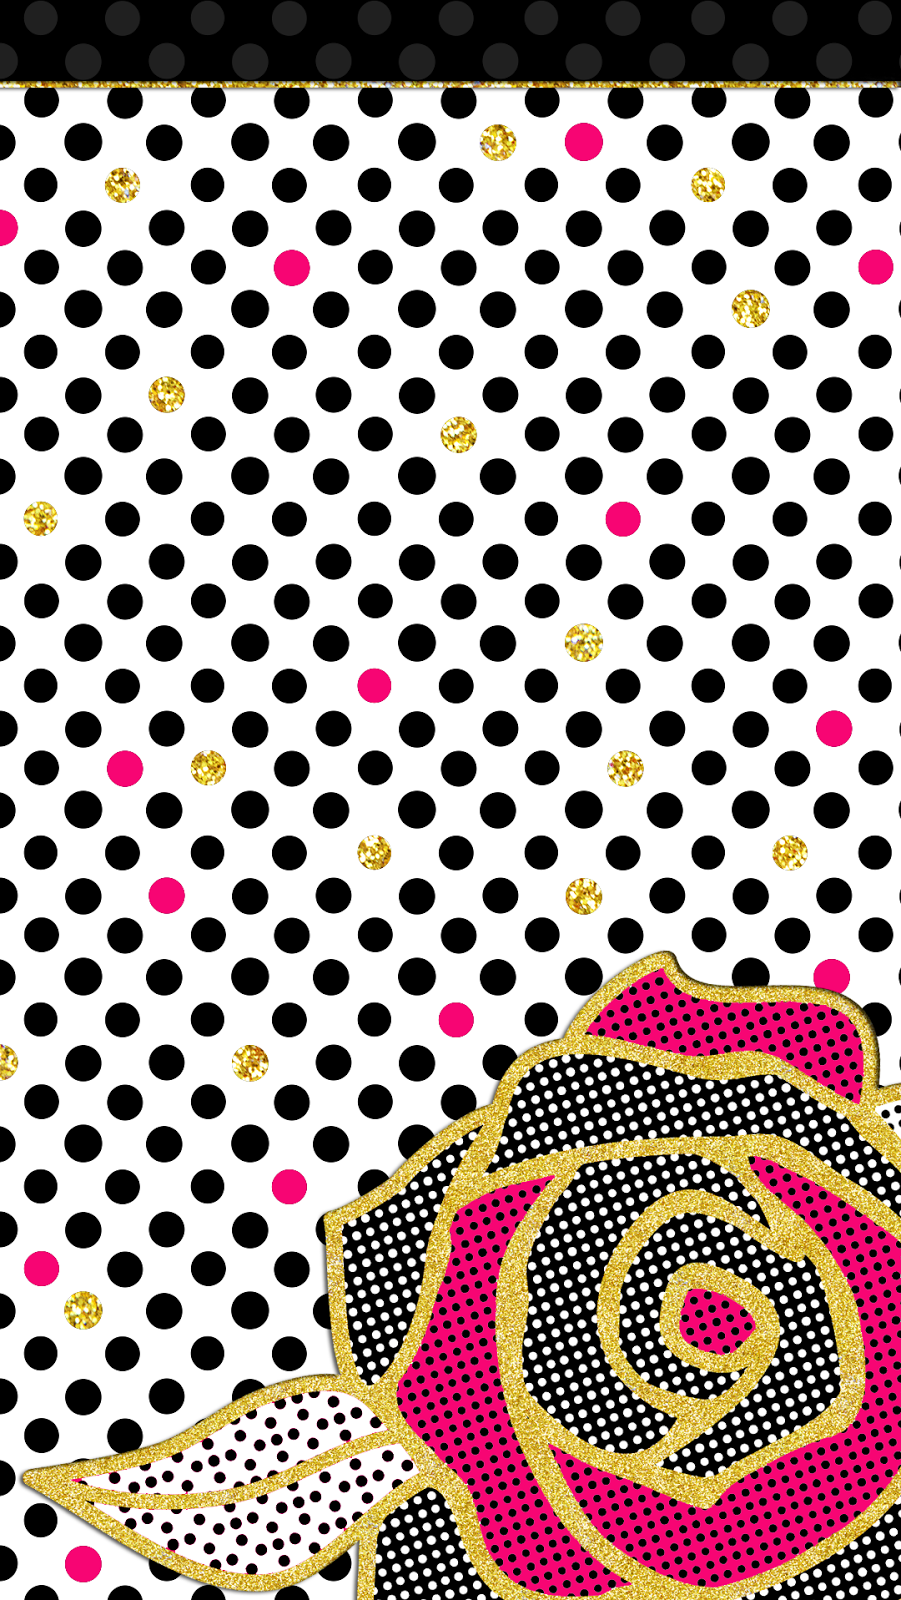 Kate Spade Hello Kitty Phone Wallpaper Risspected Kate Spade